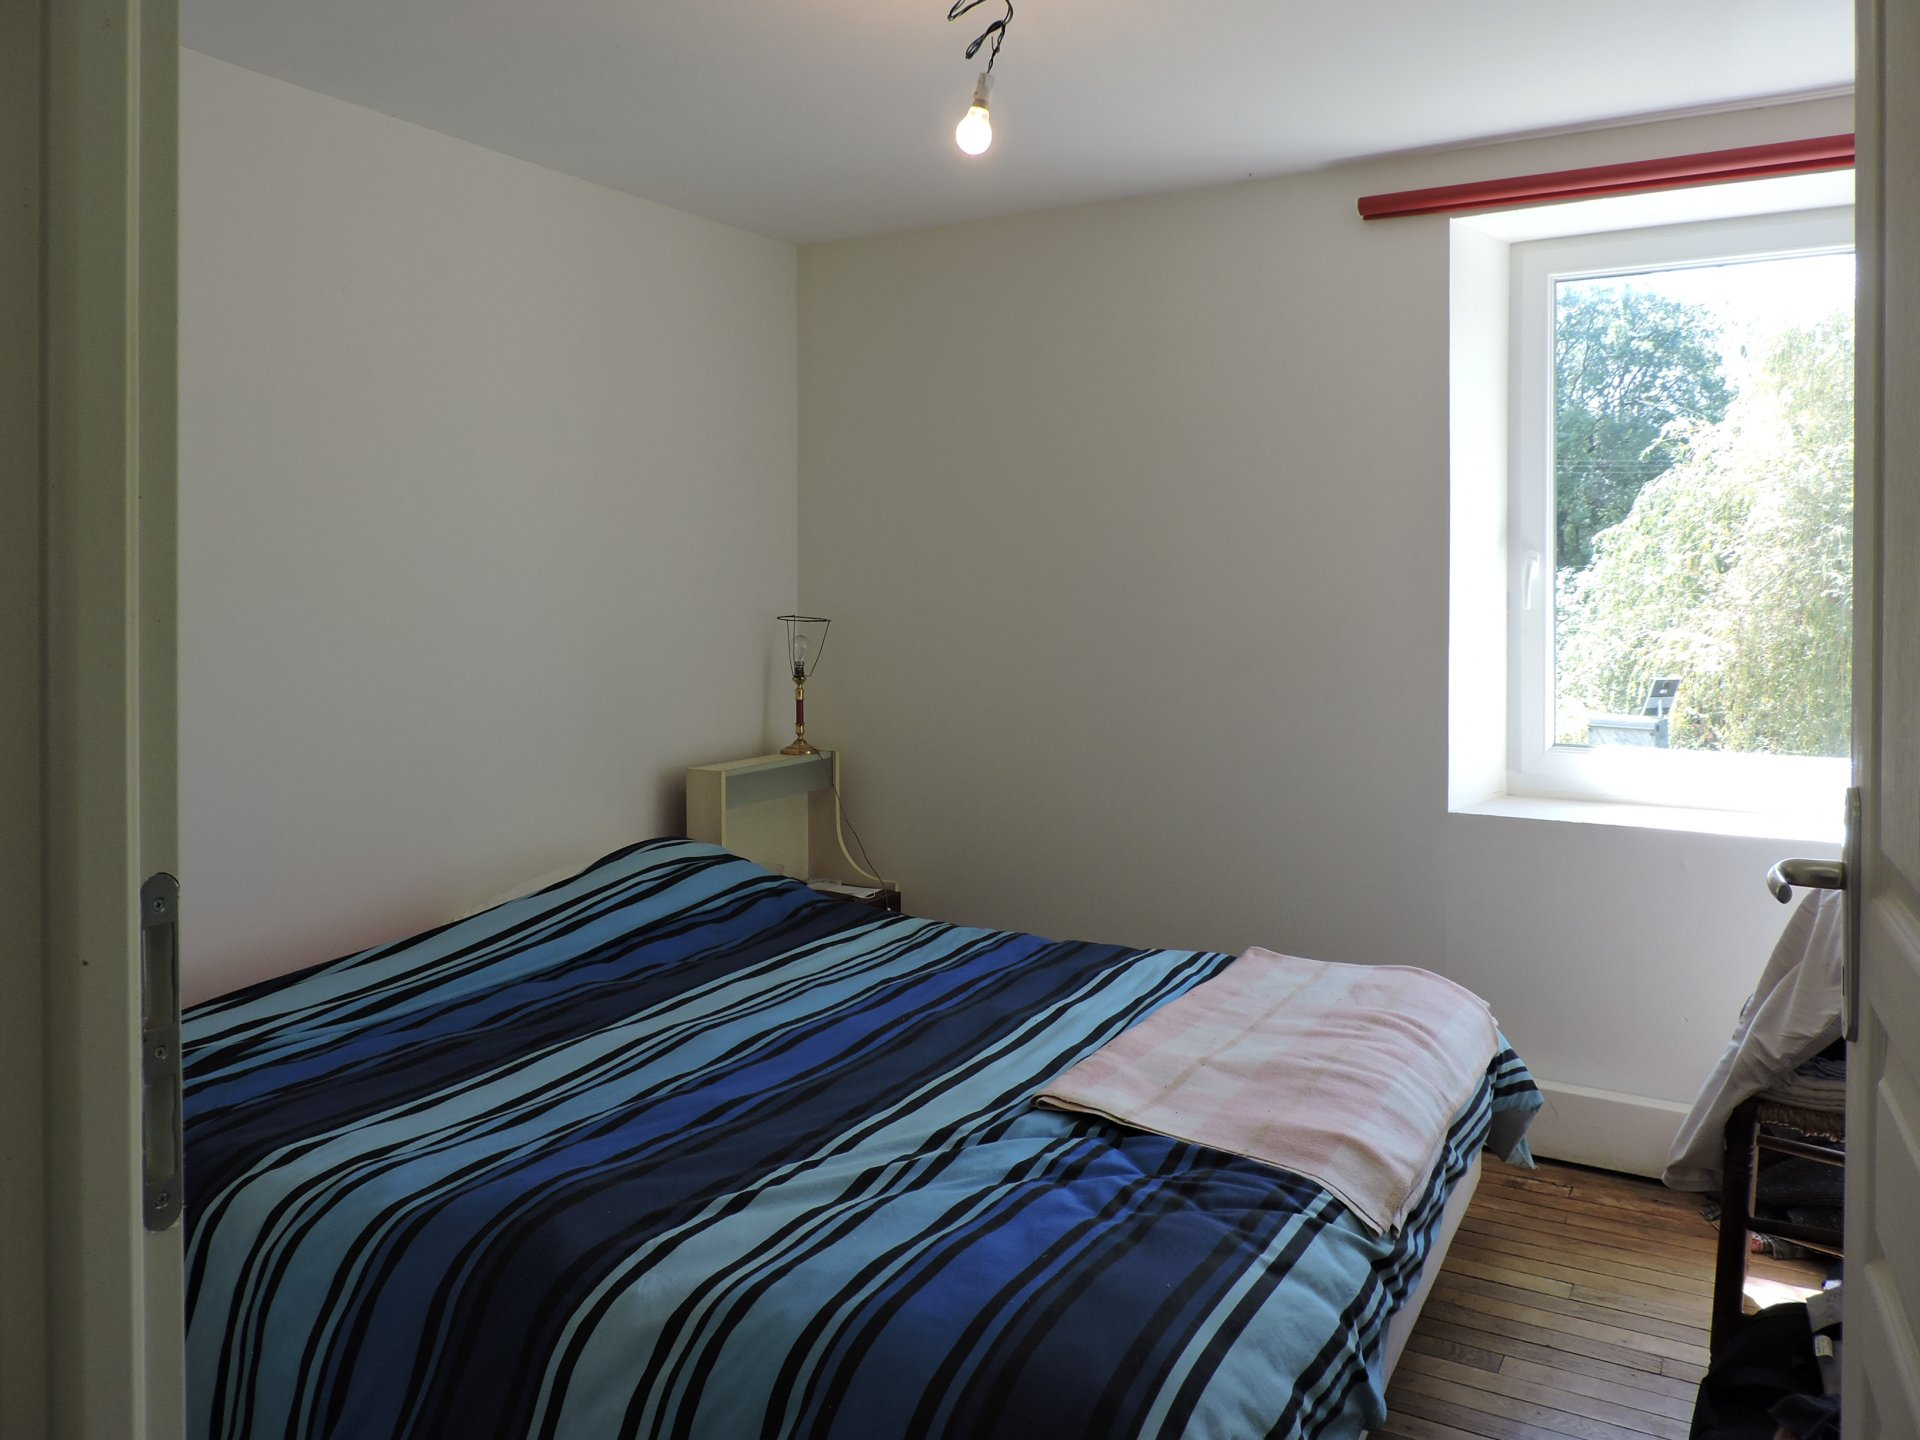 Right wing: Bedroom of the 1st floor flat